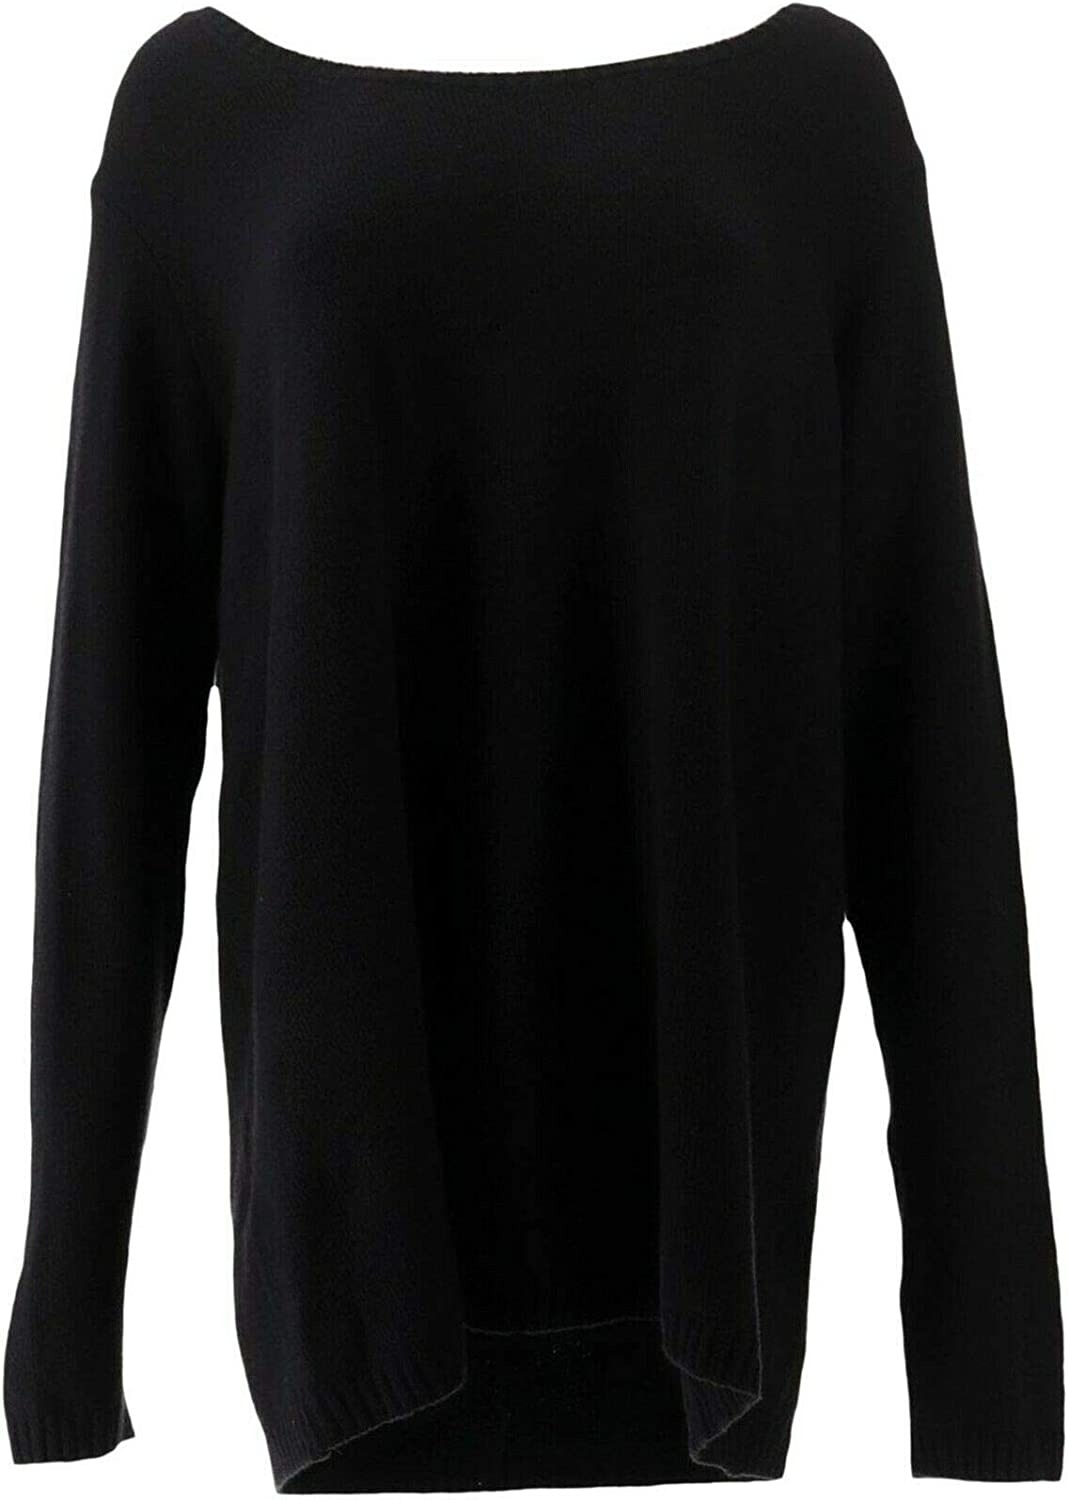 Du Jour Long Reservation SLV Sweater Tunic Black A surprise price is realized Large Knot Back A347575